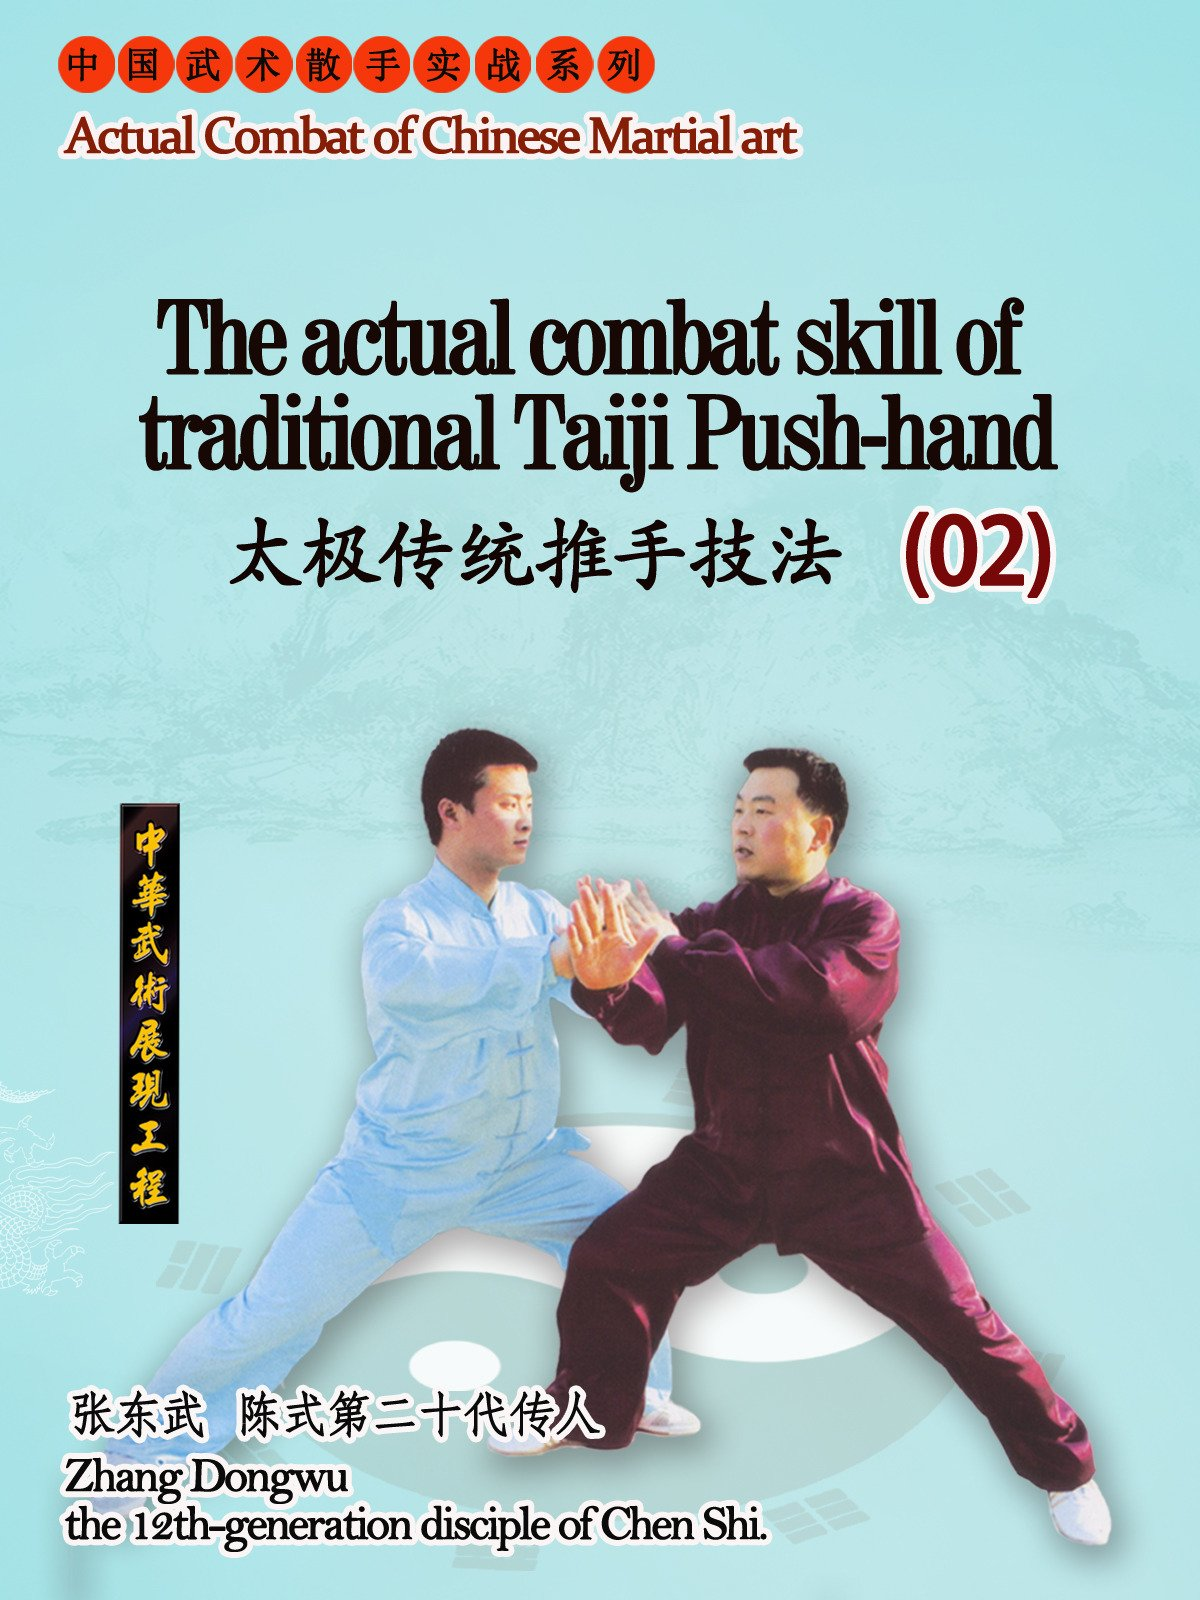 Actual Combat of Chinese Martial art-The actual combat skill of traditional Taiji Push-hand 02